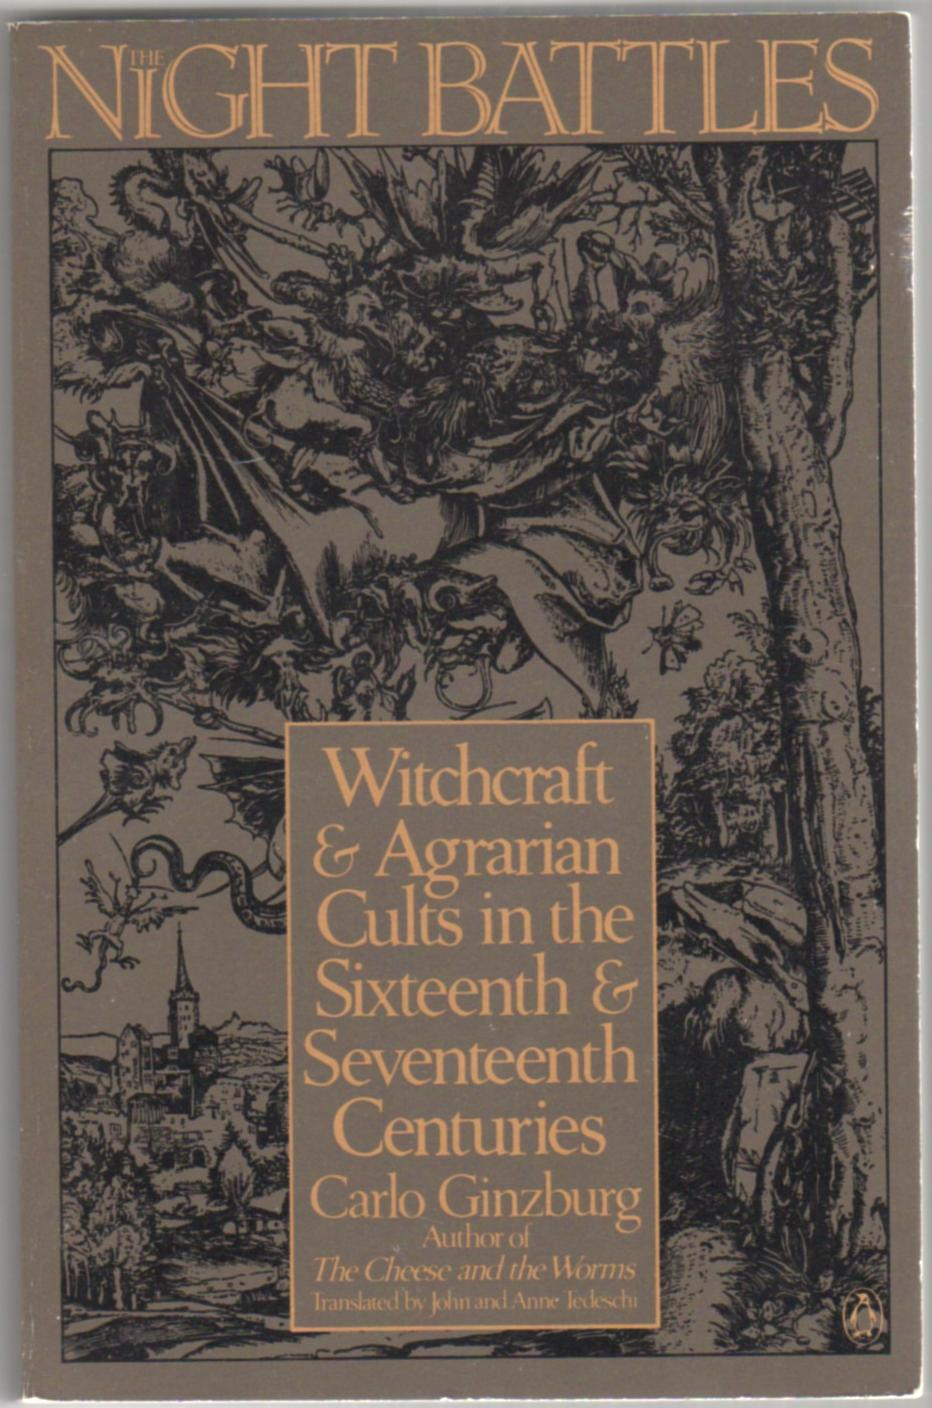 Image for Night Battles: Witchcraft Cults in the Sixteenth & Seventeenth Centuries